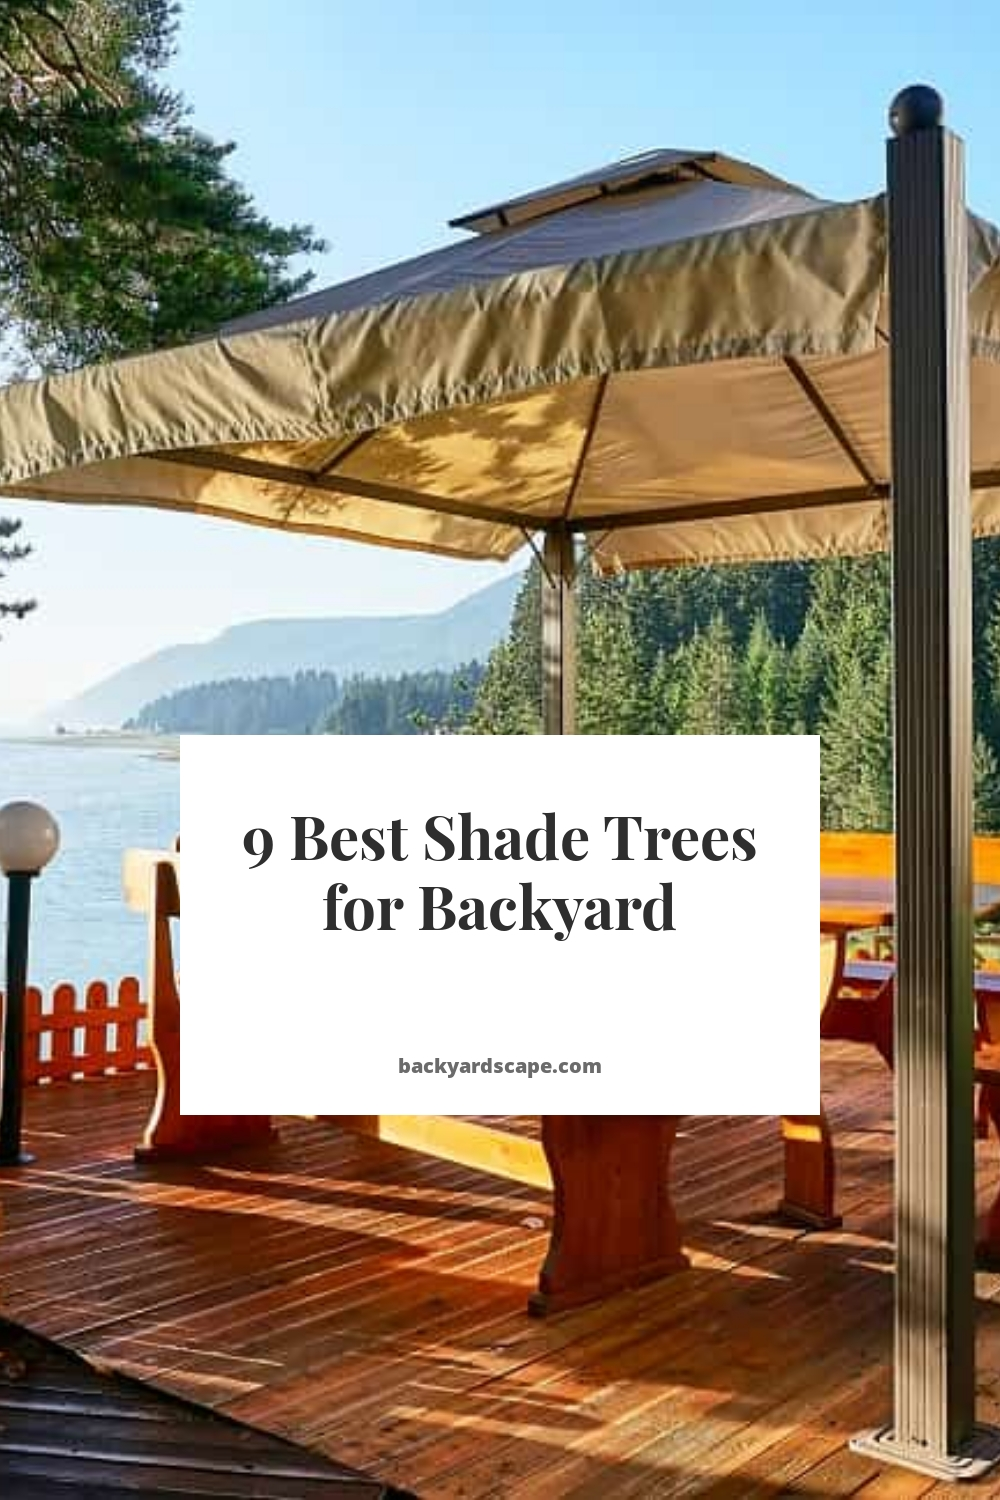 9 Best Shade Trees for Backyard